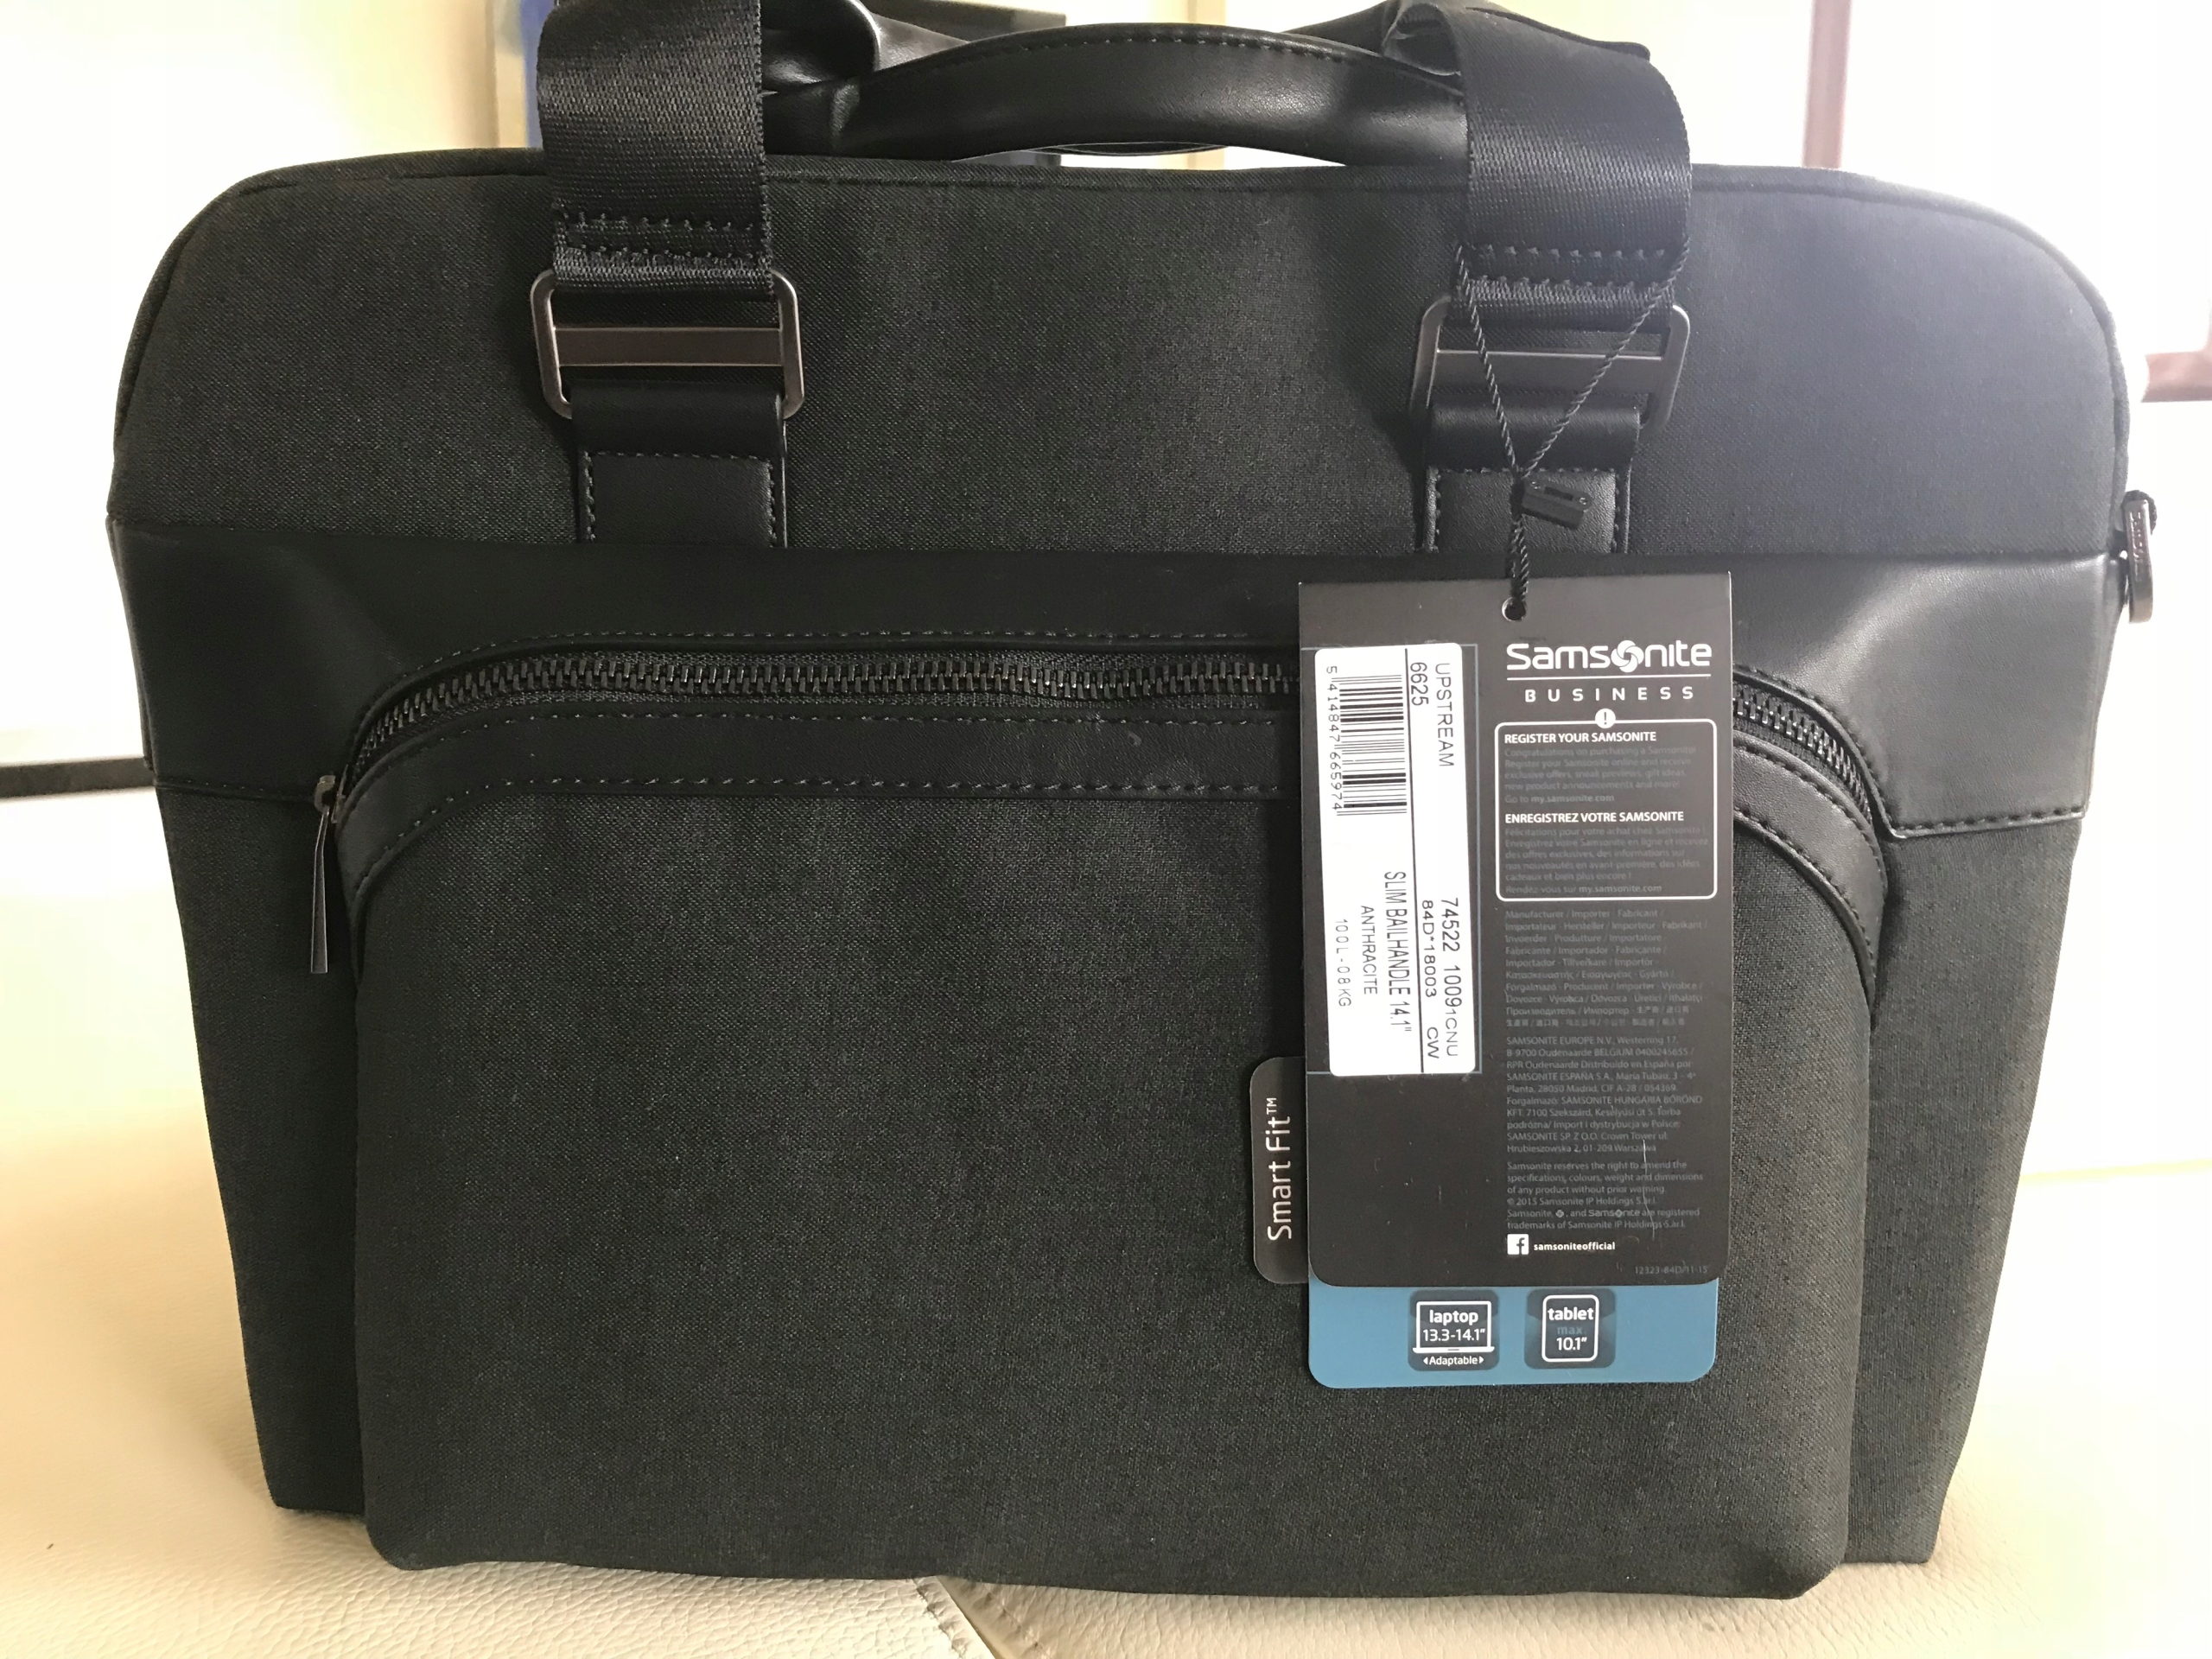 9b5f0dc884e52 SAMSONITE BUSINESS UPSTREAM TORBA NA LAPTOPA - 7711775606 ...